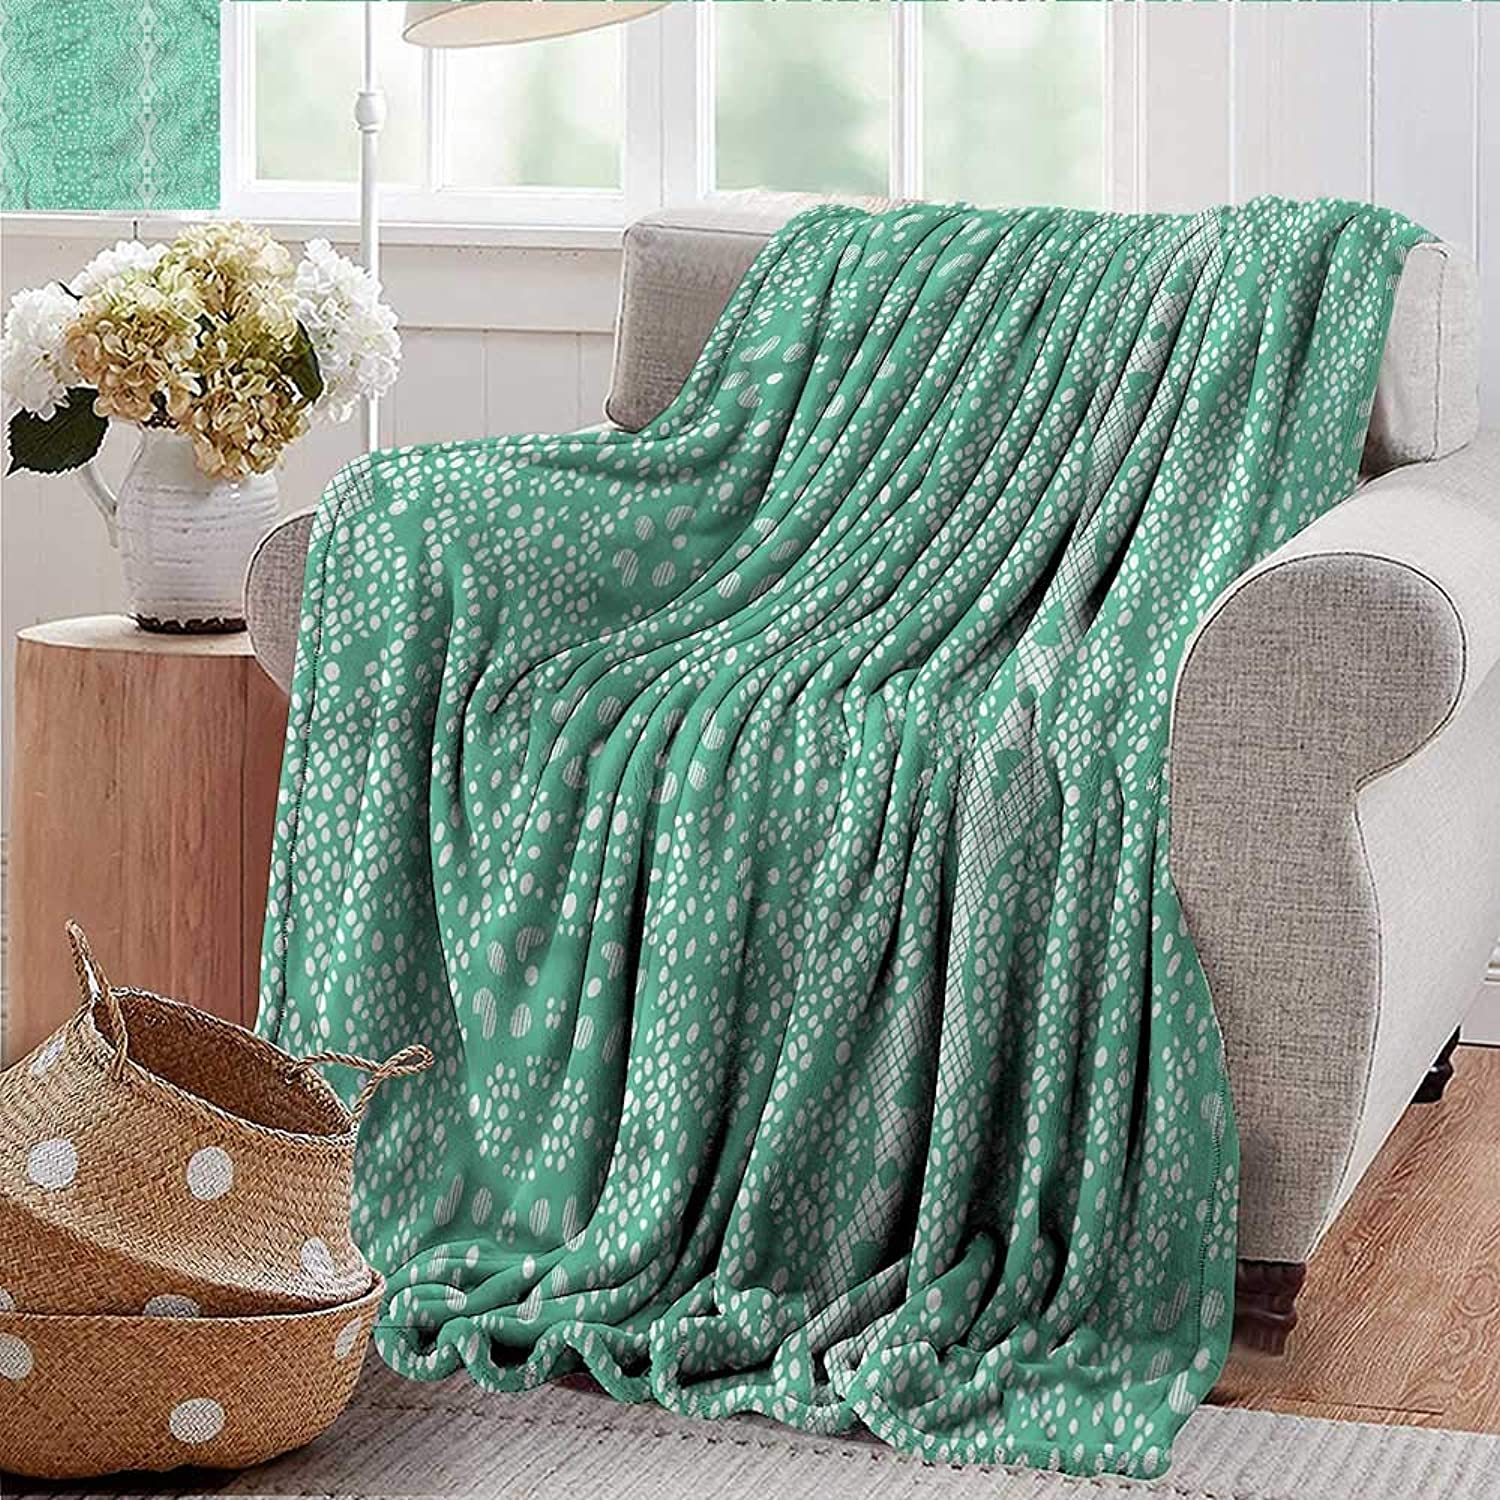 Xaviera Doherty Weighted Blanket for Kids Mint,Retro Lace Pattern Soft Summer Cooling Lightweight Bed Blanket 50 x60